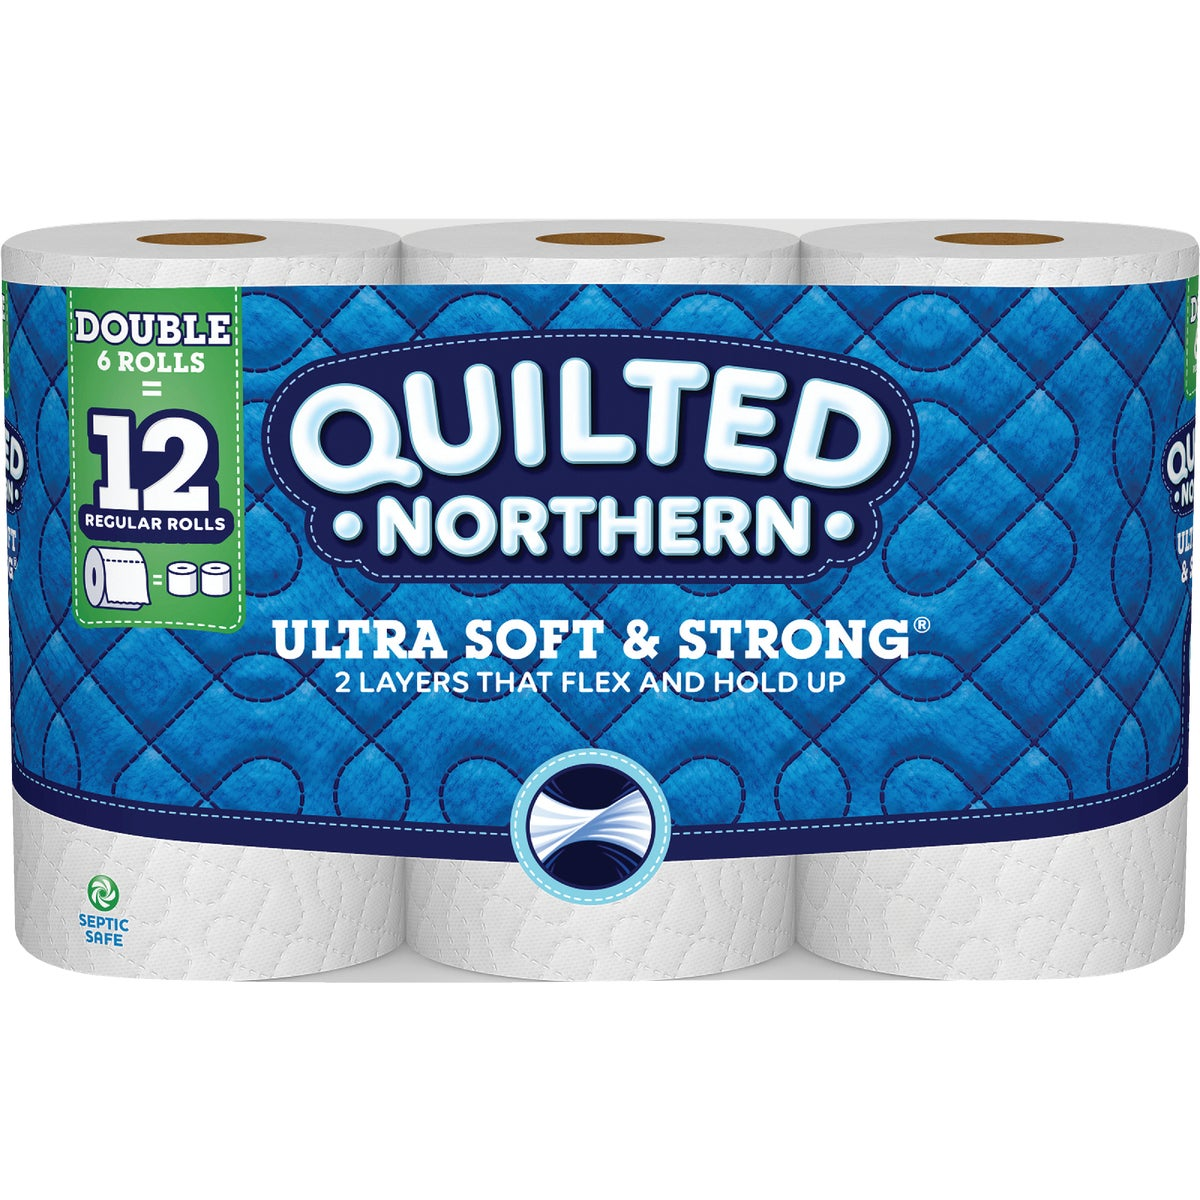 6RL QT NORTH TOIL TISSUE - 96362 by Georgia-pacific Corp